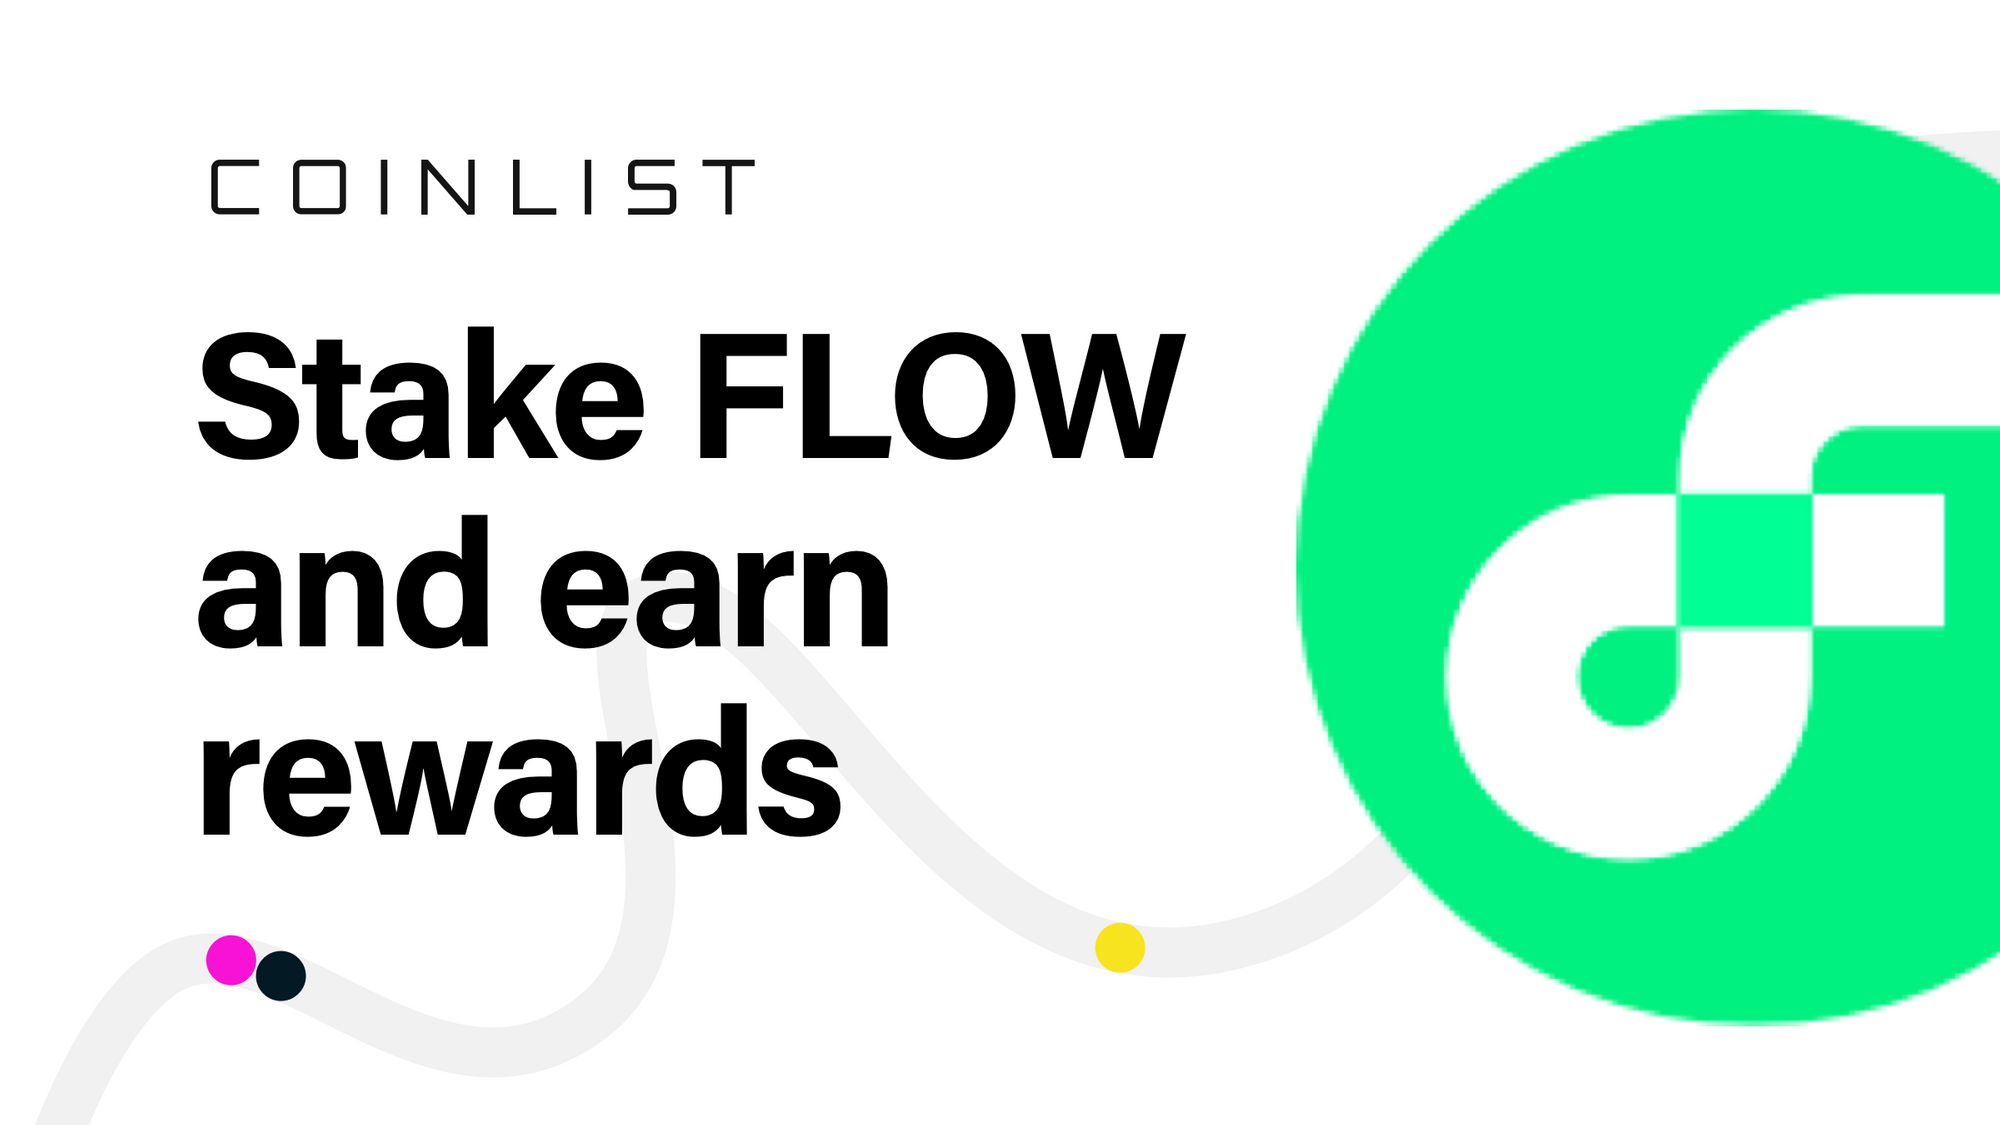 Stake FLOW on CoinList and Earn Rewards